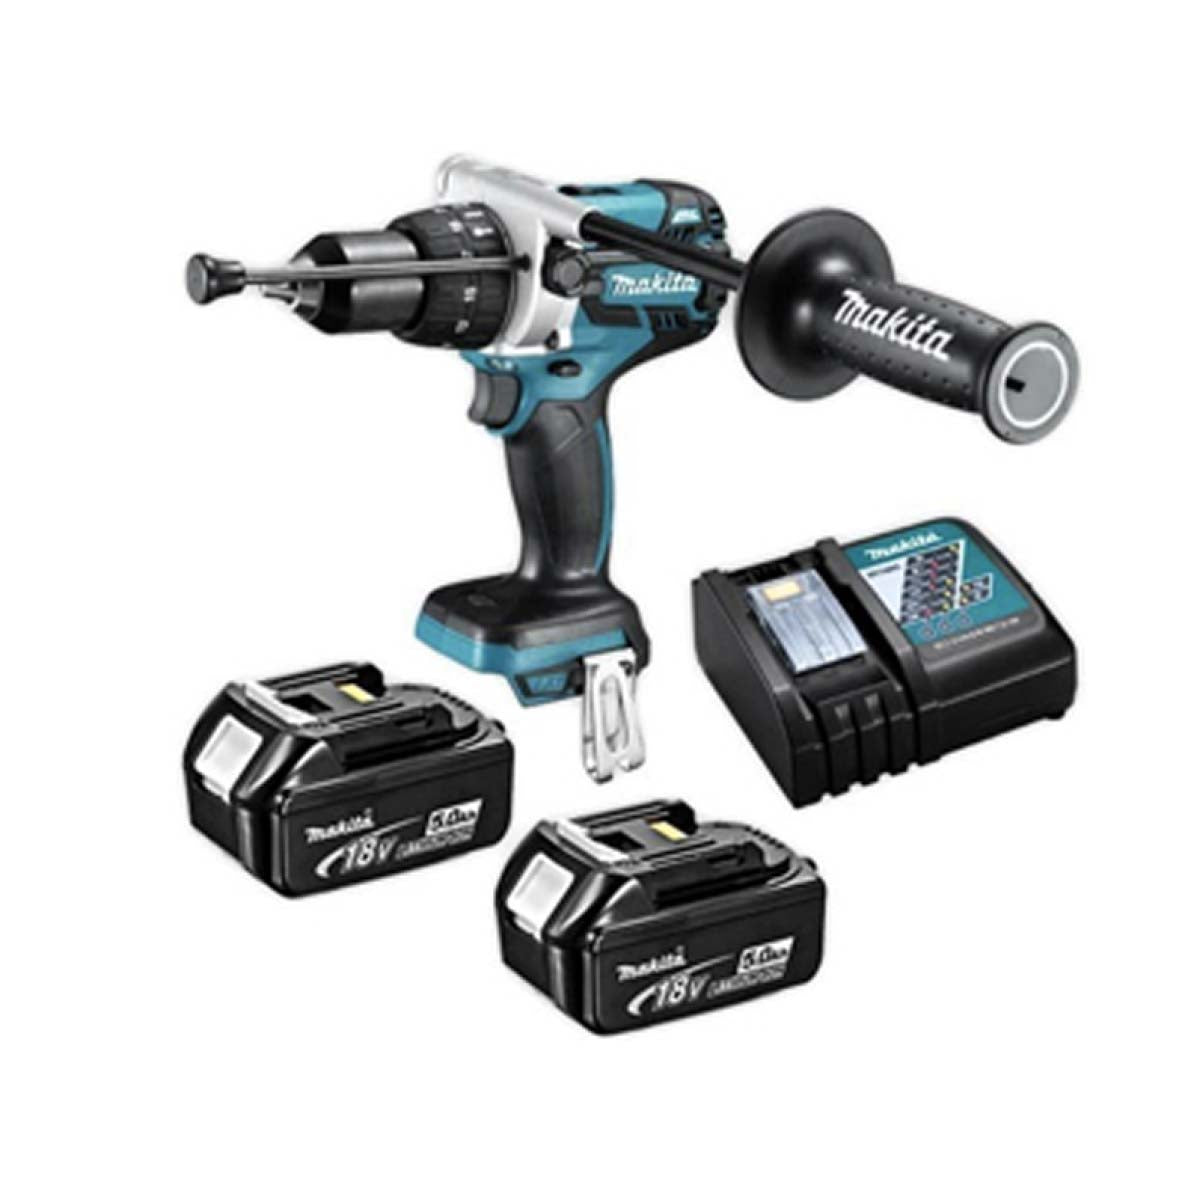 Makita Hammer Drill (SET 2x5Ah) 18V LXT Brushless (DHP481RTE)